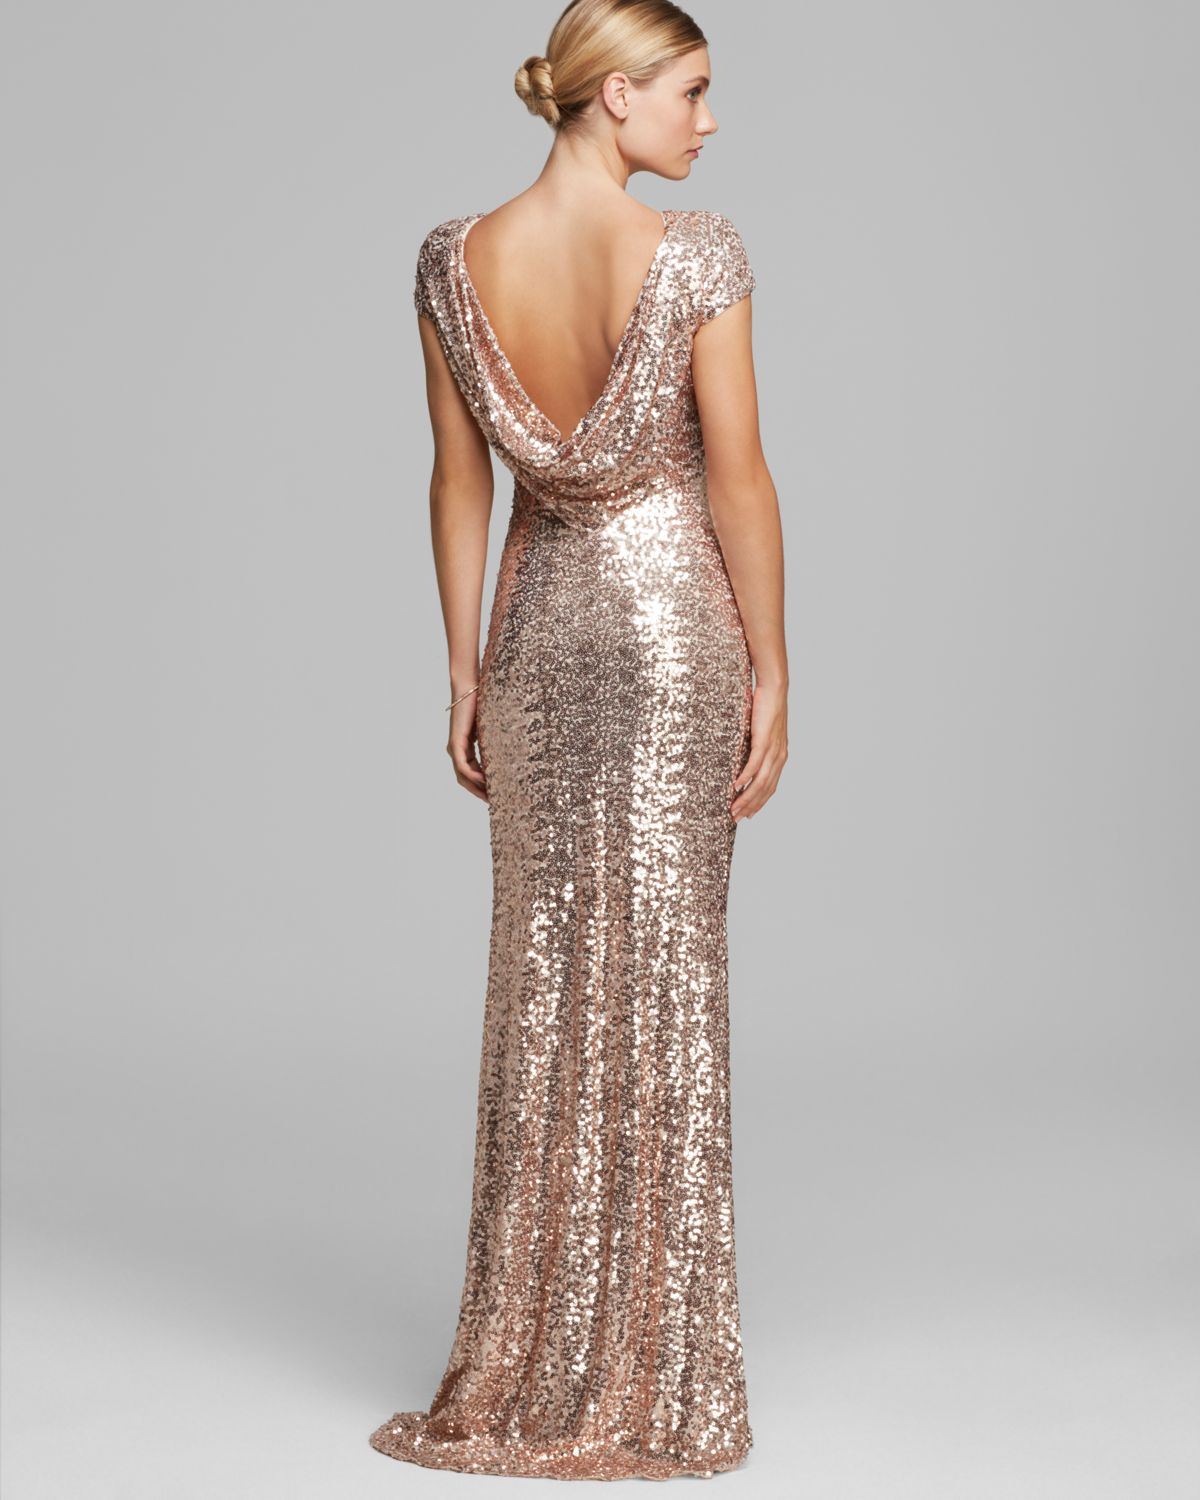 badgley mischka pink gown cowlneck back cap sleeve sequin gowns product 1 19478111 1 182088875 normal